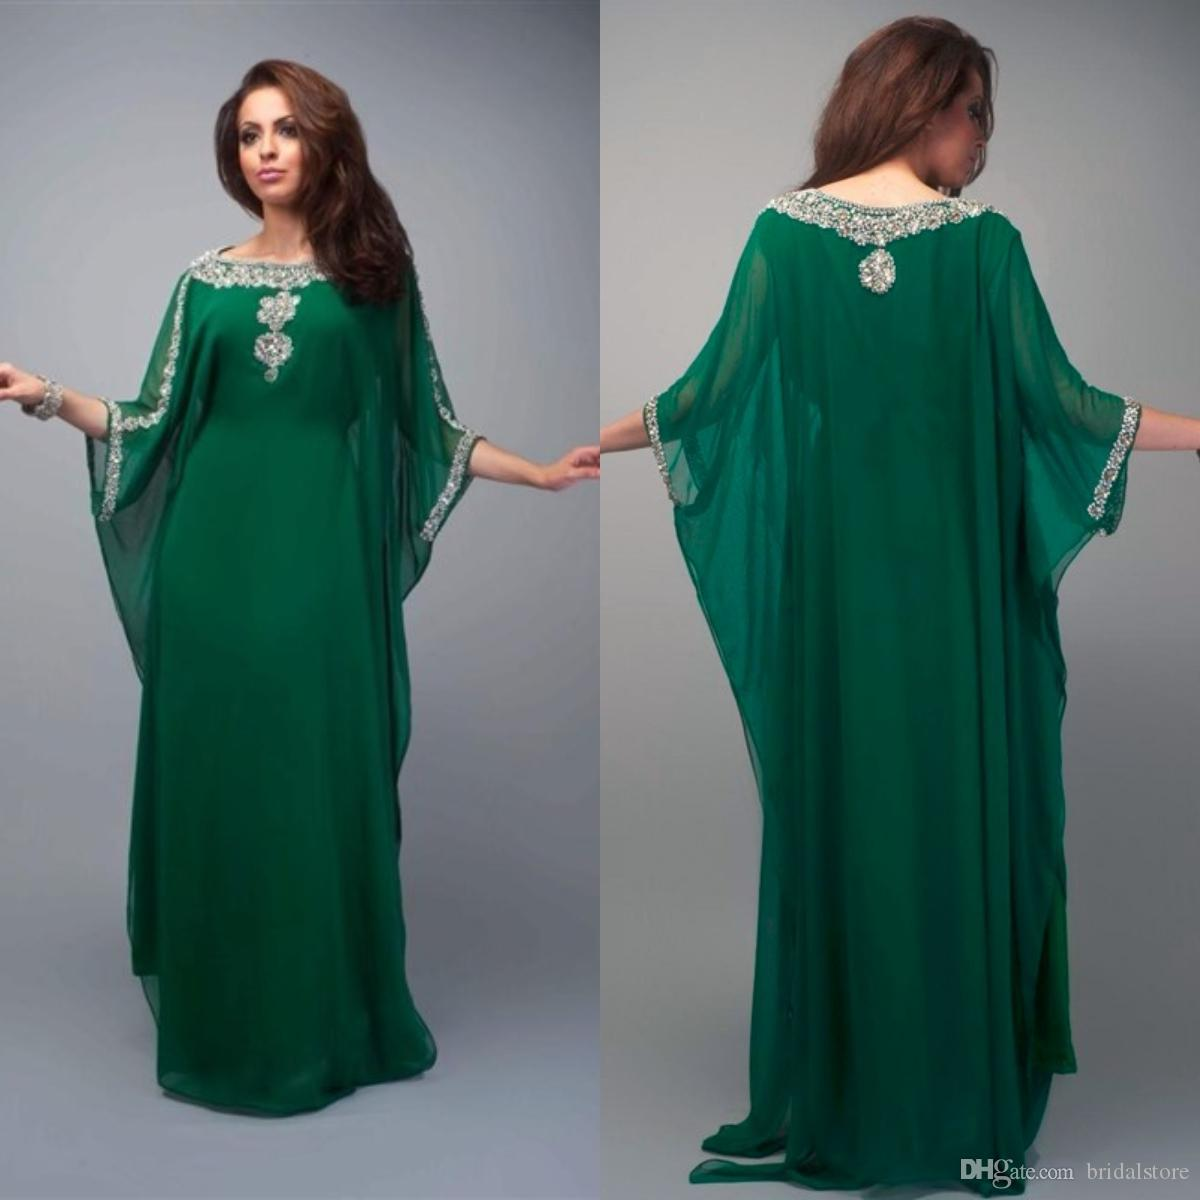 7216b4cb549 Vintage Green Dubai Saudi Arabia Evening Dresses Elegant Beaded Jewel  Chiffon Floor Length Plus Size Prom Gowns With Sleeve Unique Party Womens  Evening Wear ...